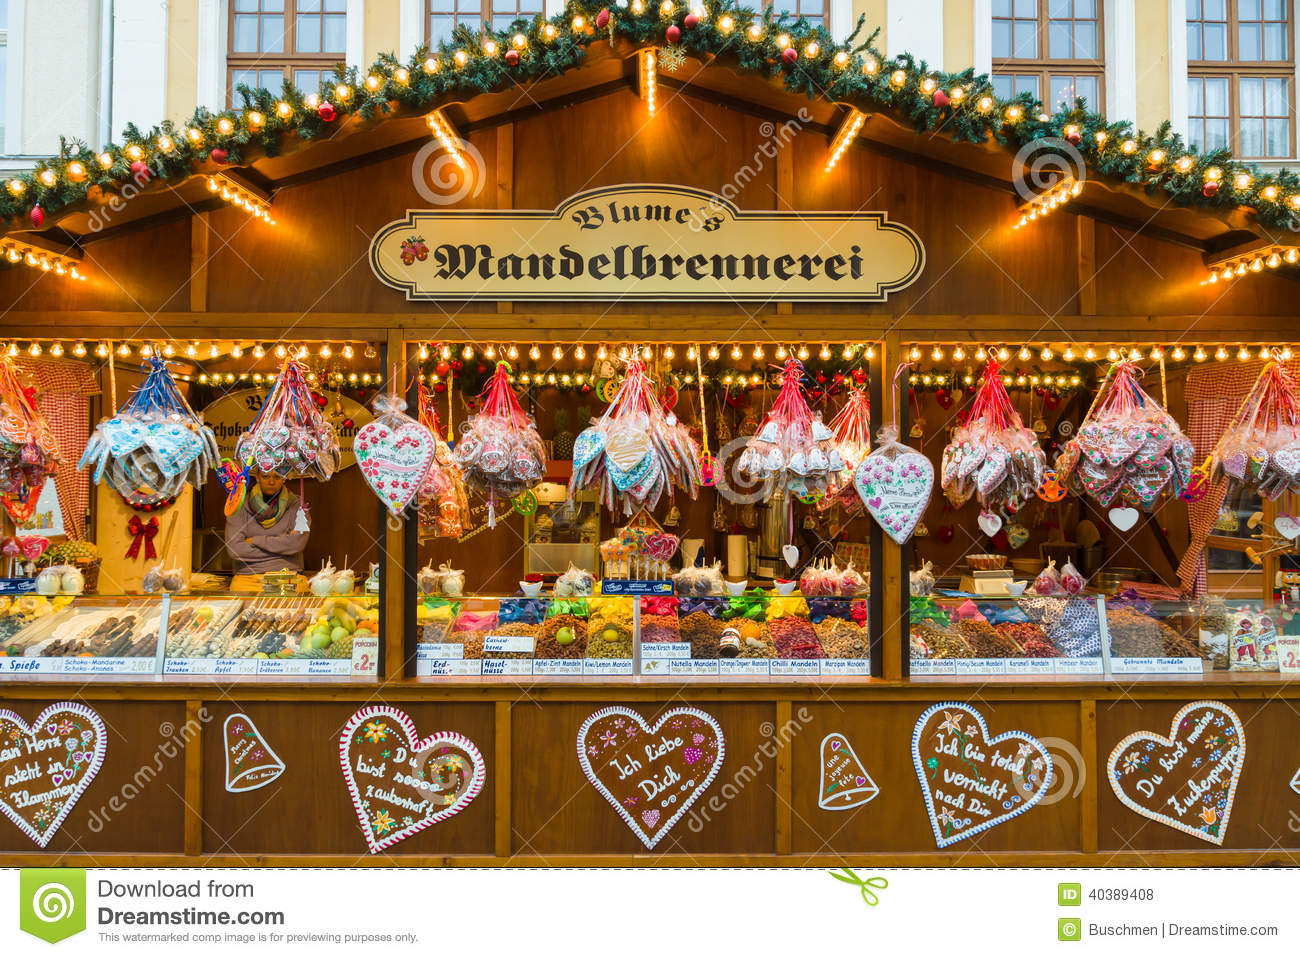 German Christmas Market >> Christmas Market In The Old Town Of Potsdam. Selling Traditional Sweets And Gingerbread ...